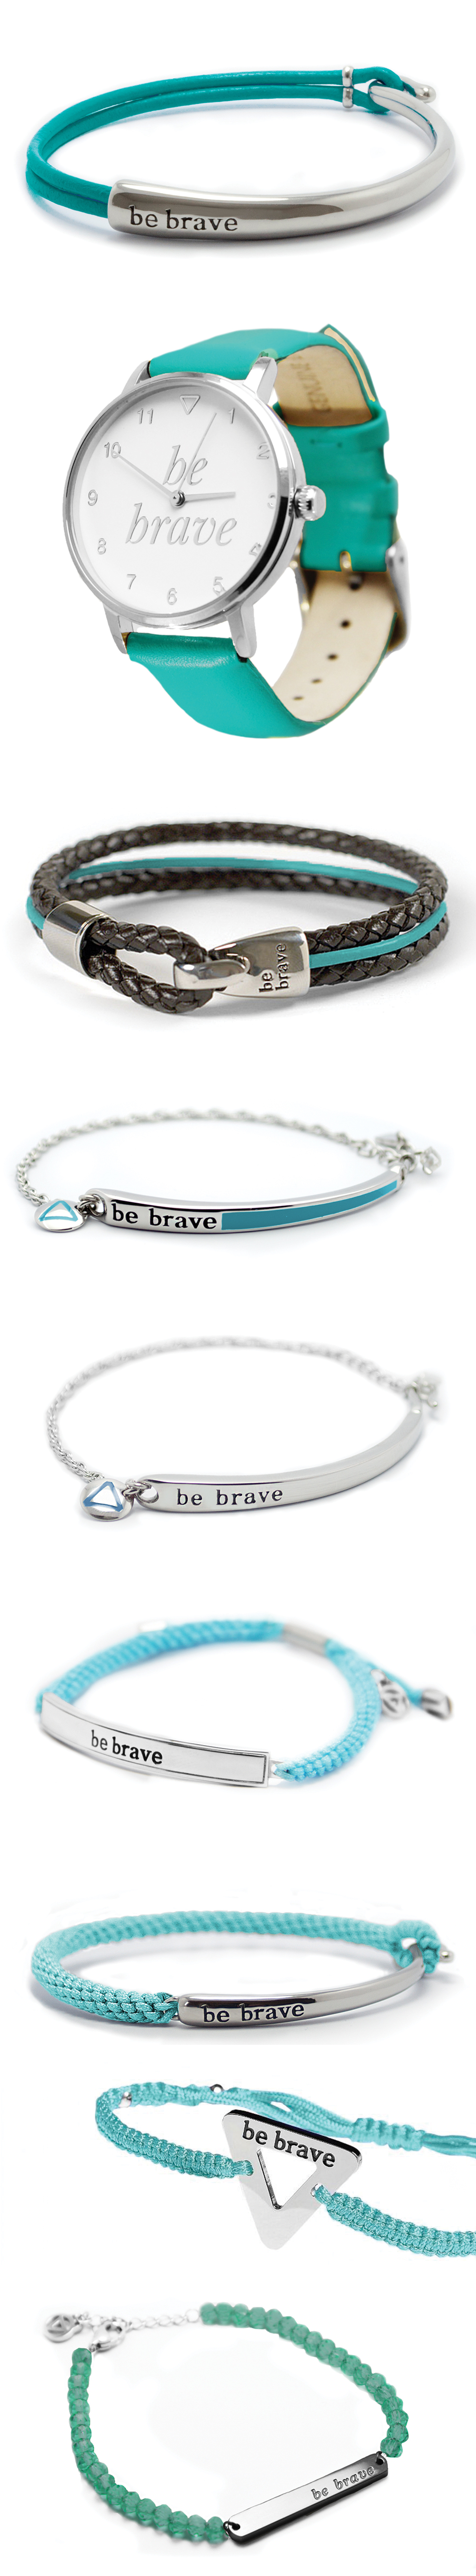 awareness bracelets gadow breast survivor hand bracelet dysautonomia jewelry adjustable and collections medical charm charms bangle new stamped cancer